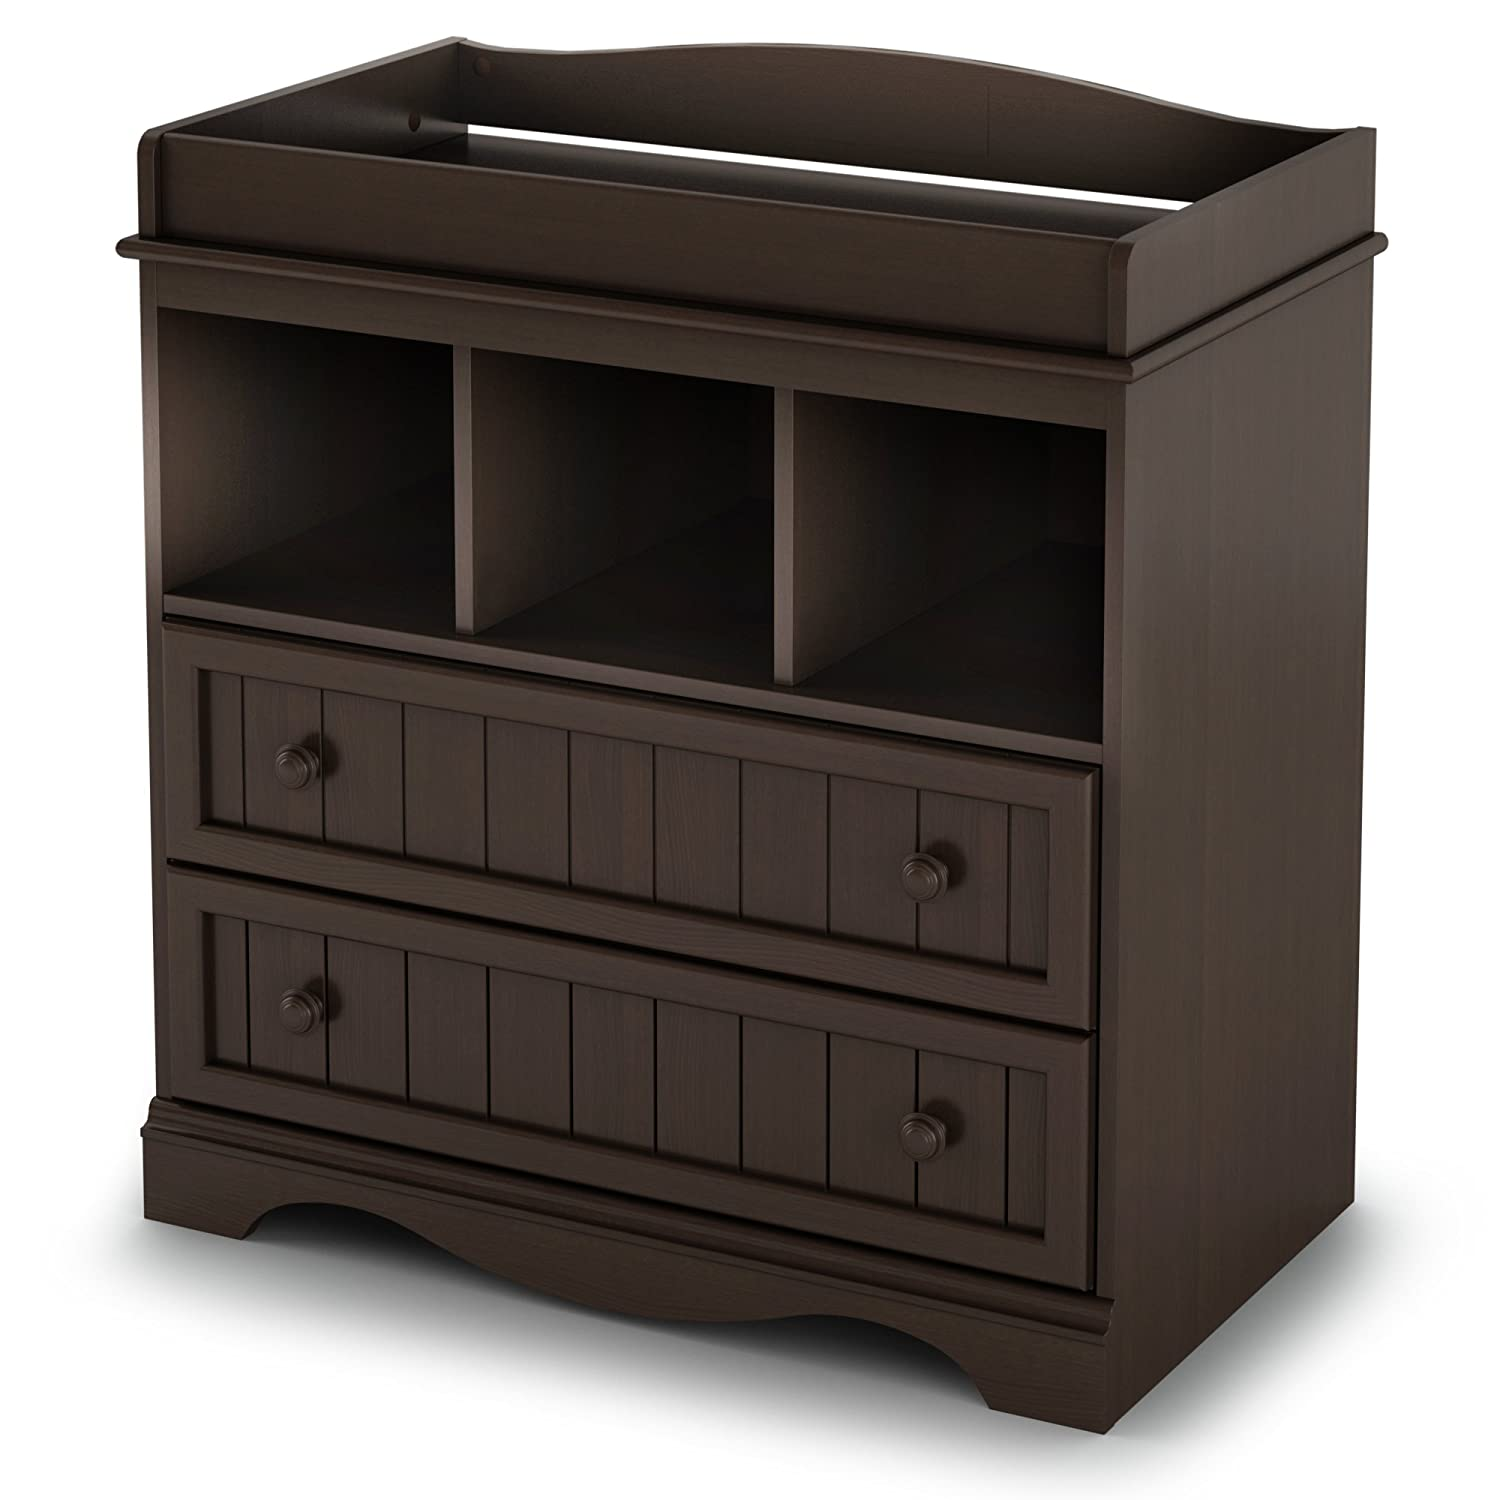 Amazon.com : South Shore Savannah Collection Changing Table, Espresso :  Crib And Changing Table Combo : Baby